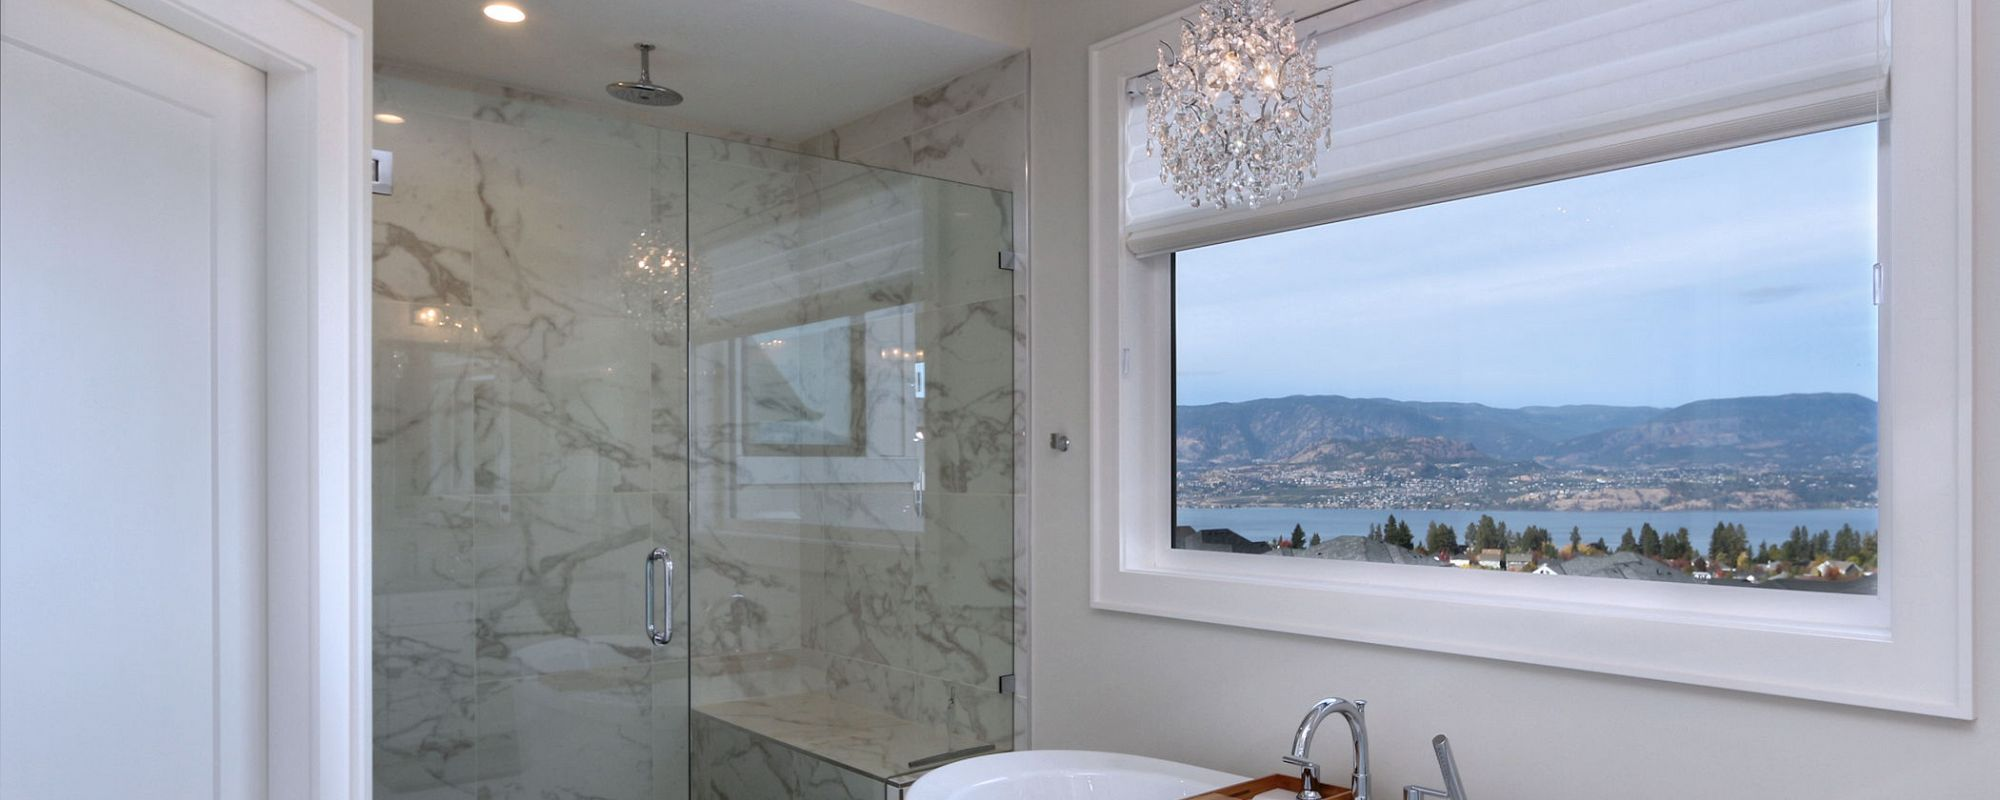 Large bathroom window with chandelier light fixture overlooking the Okanagan valley and lake